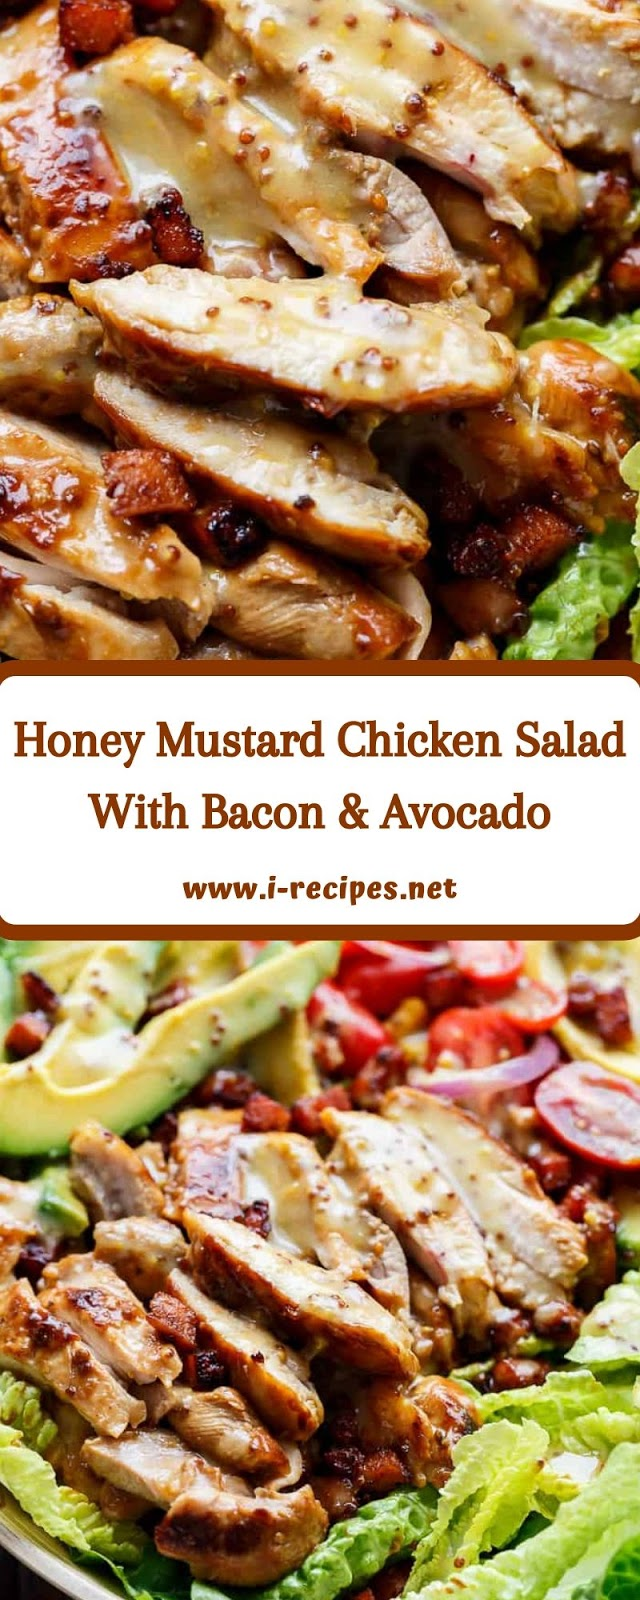 Honey Mustard Chicken Salad With Bacon & Avocado